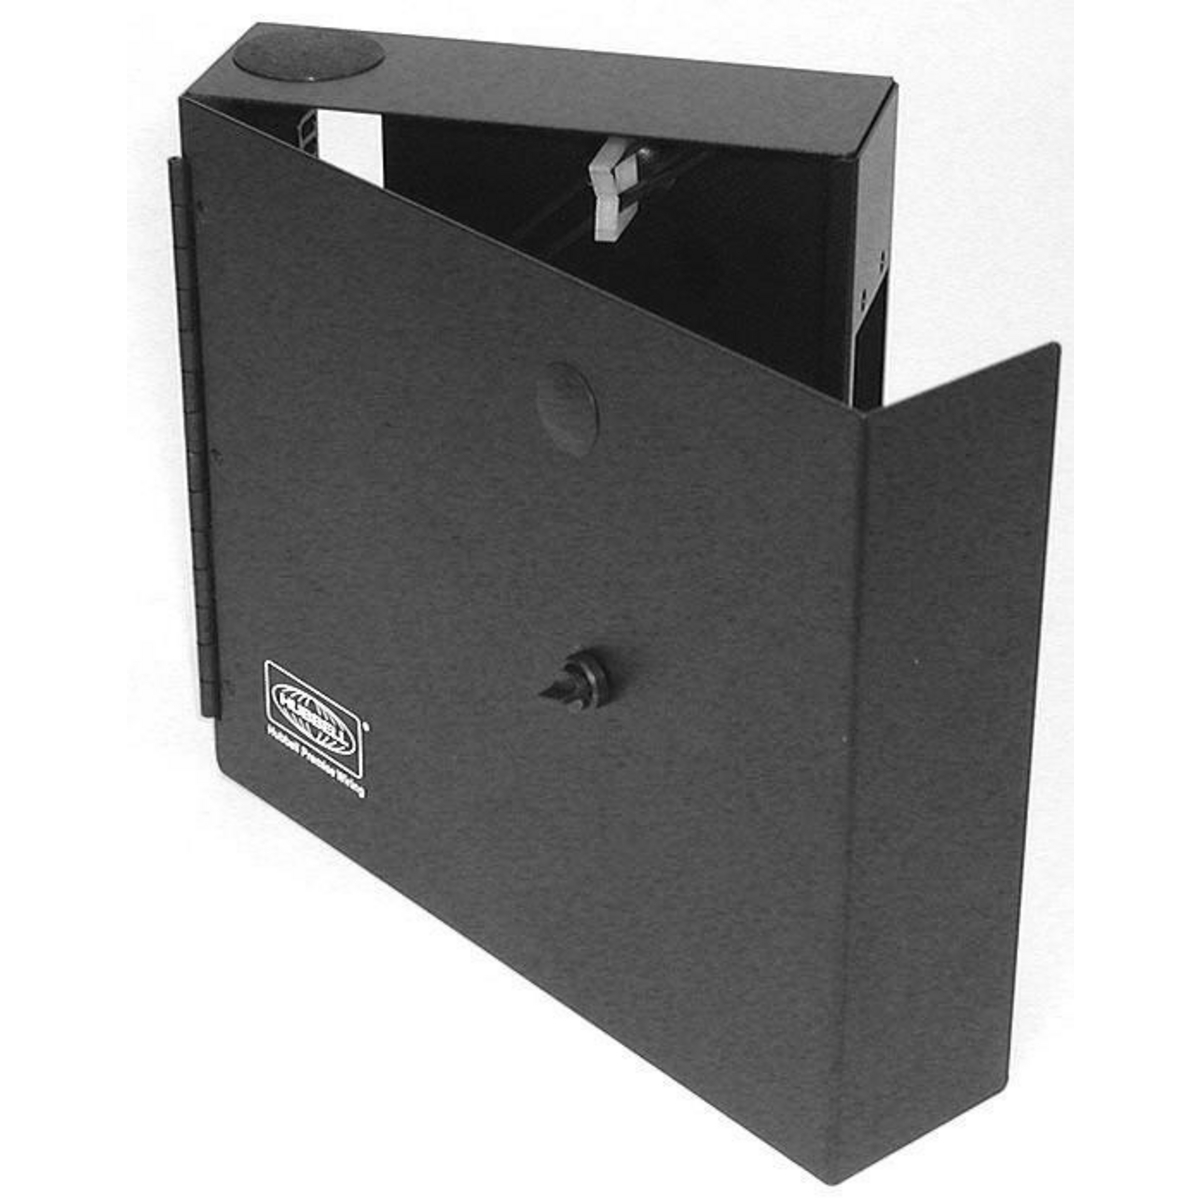 Hubbell FTU2SP Black Powder Coated Cold Rolled Steel Single Door 2-FSP Adapter Panel Wall Mount Cabinet